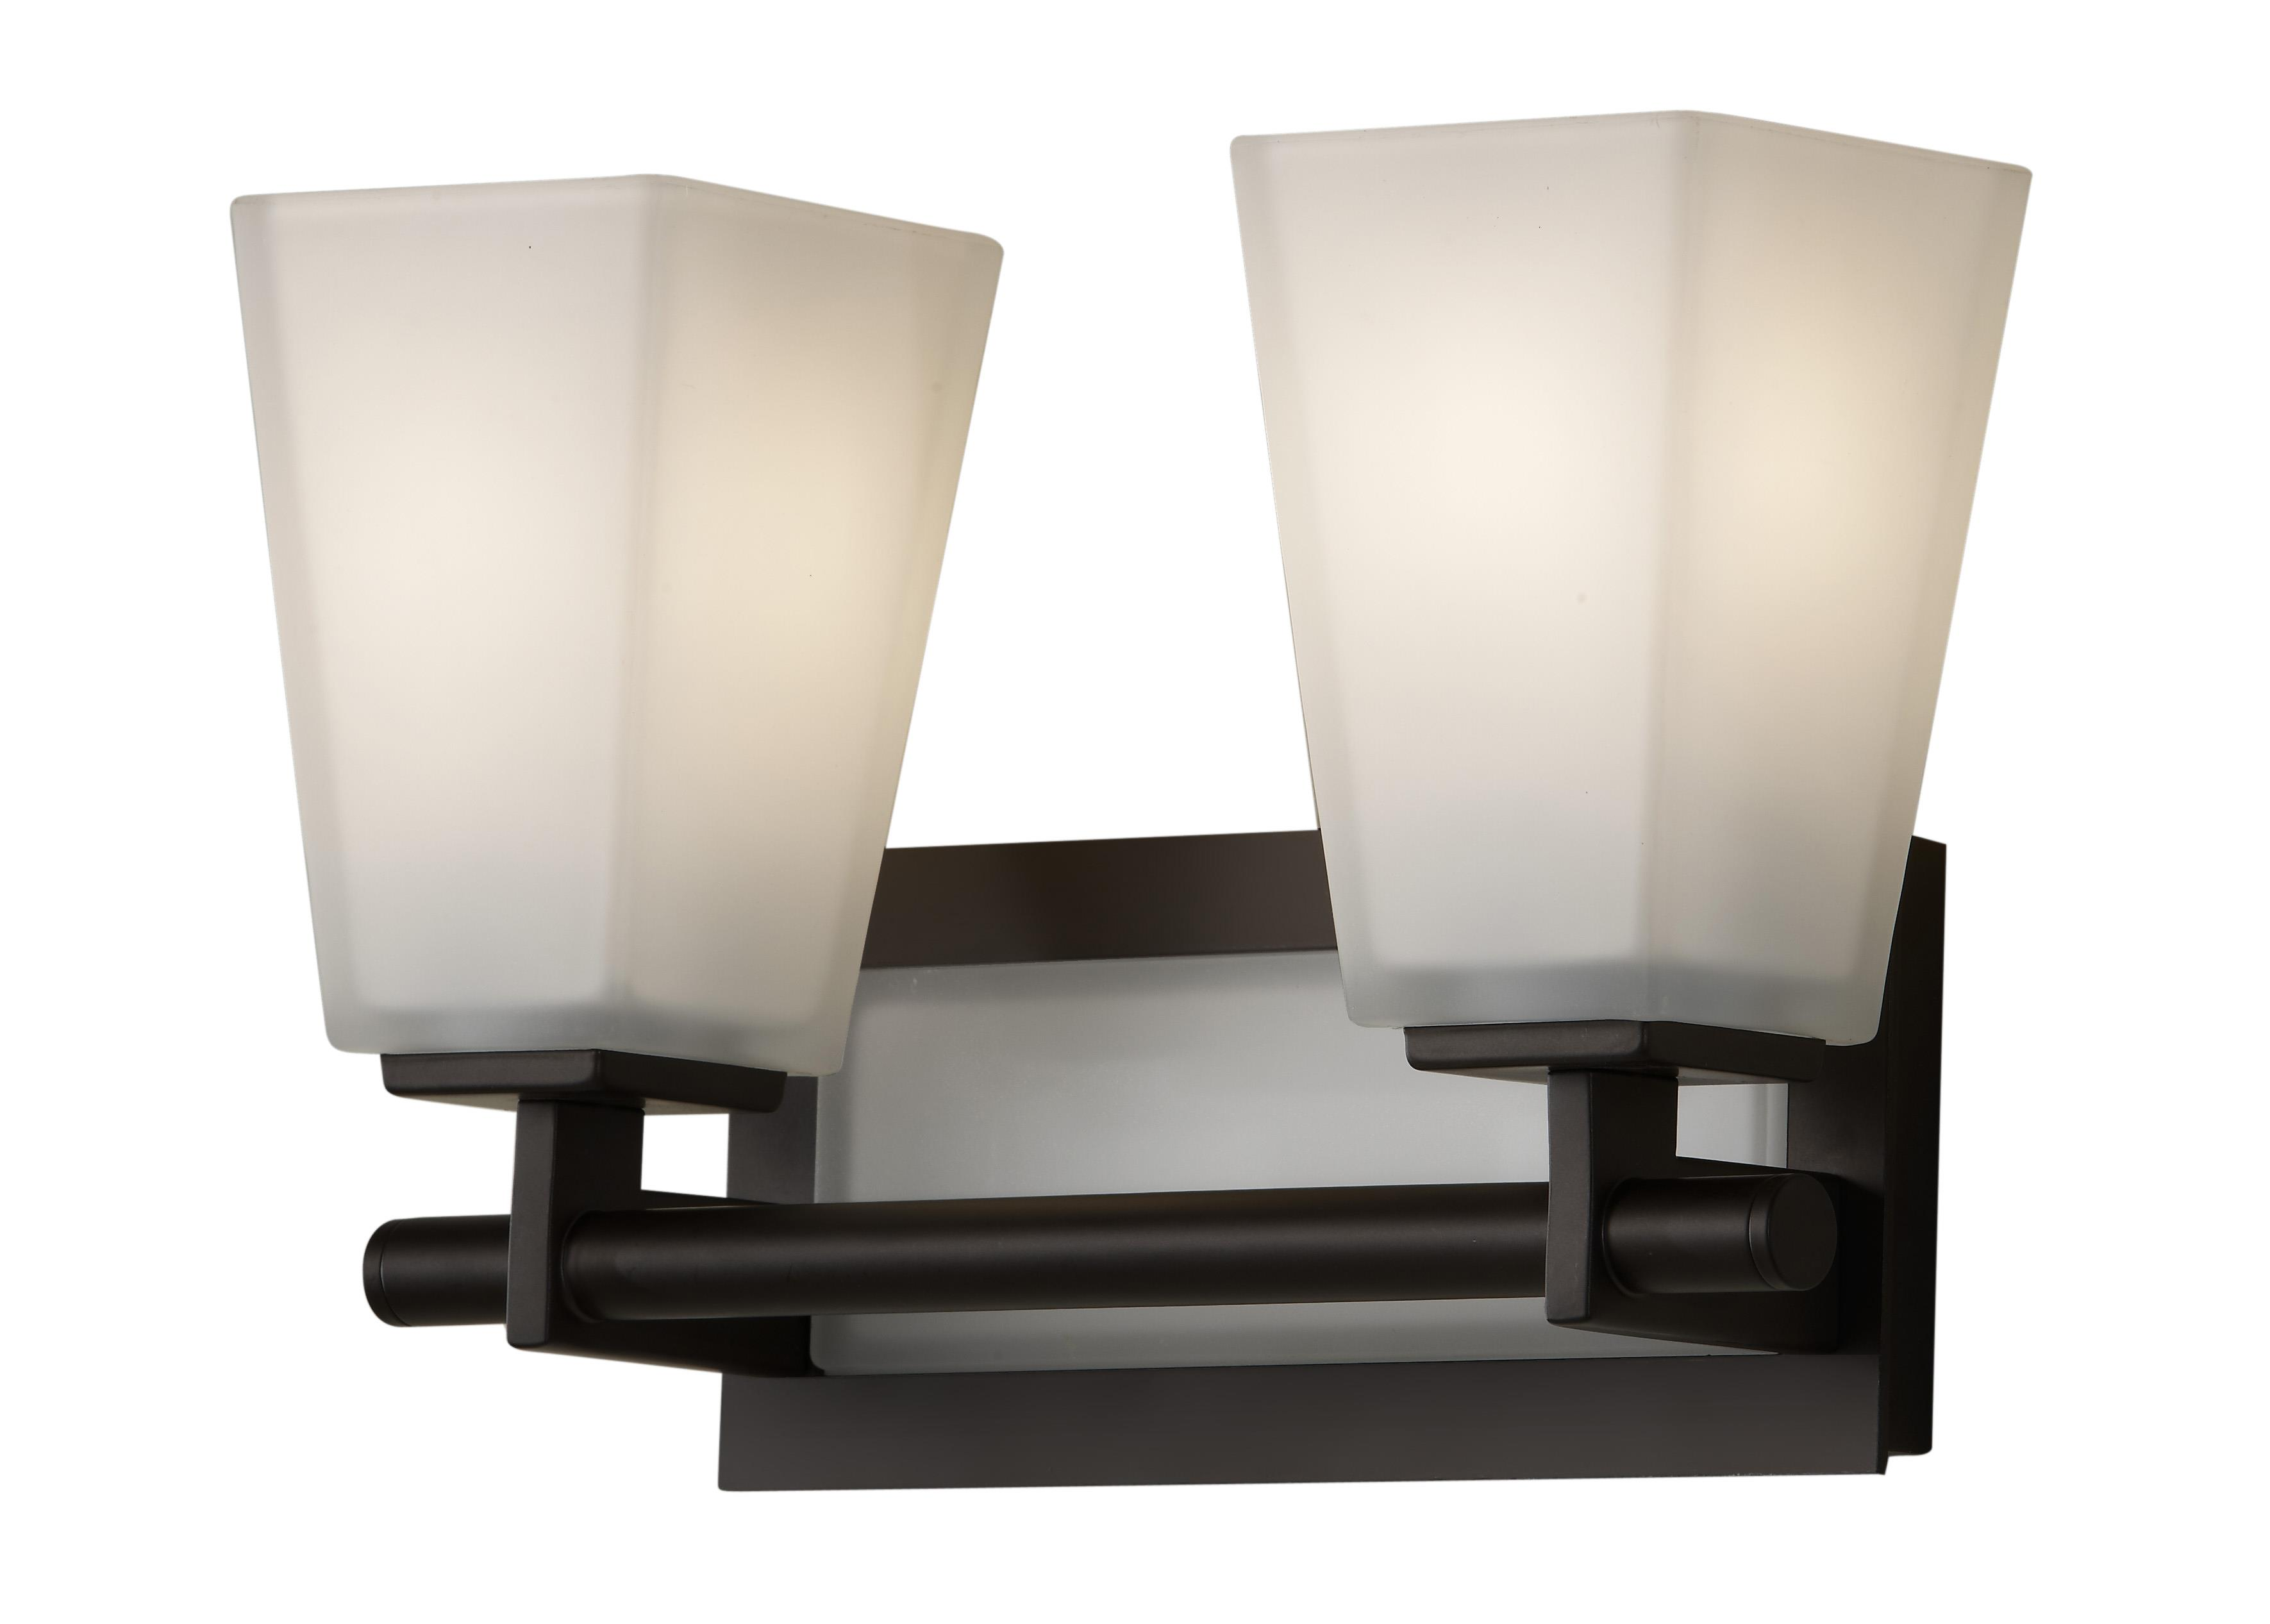 Murray Feiss Vs16602 Orb Clayton 2 Light Bathroom Vanity Lighting Oil Rubbed Bronze